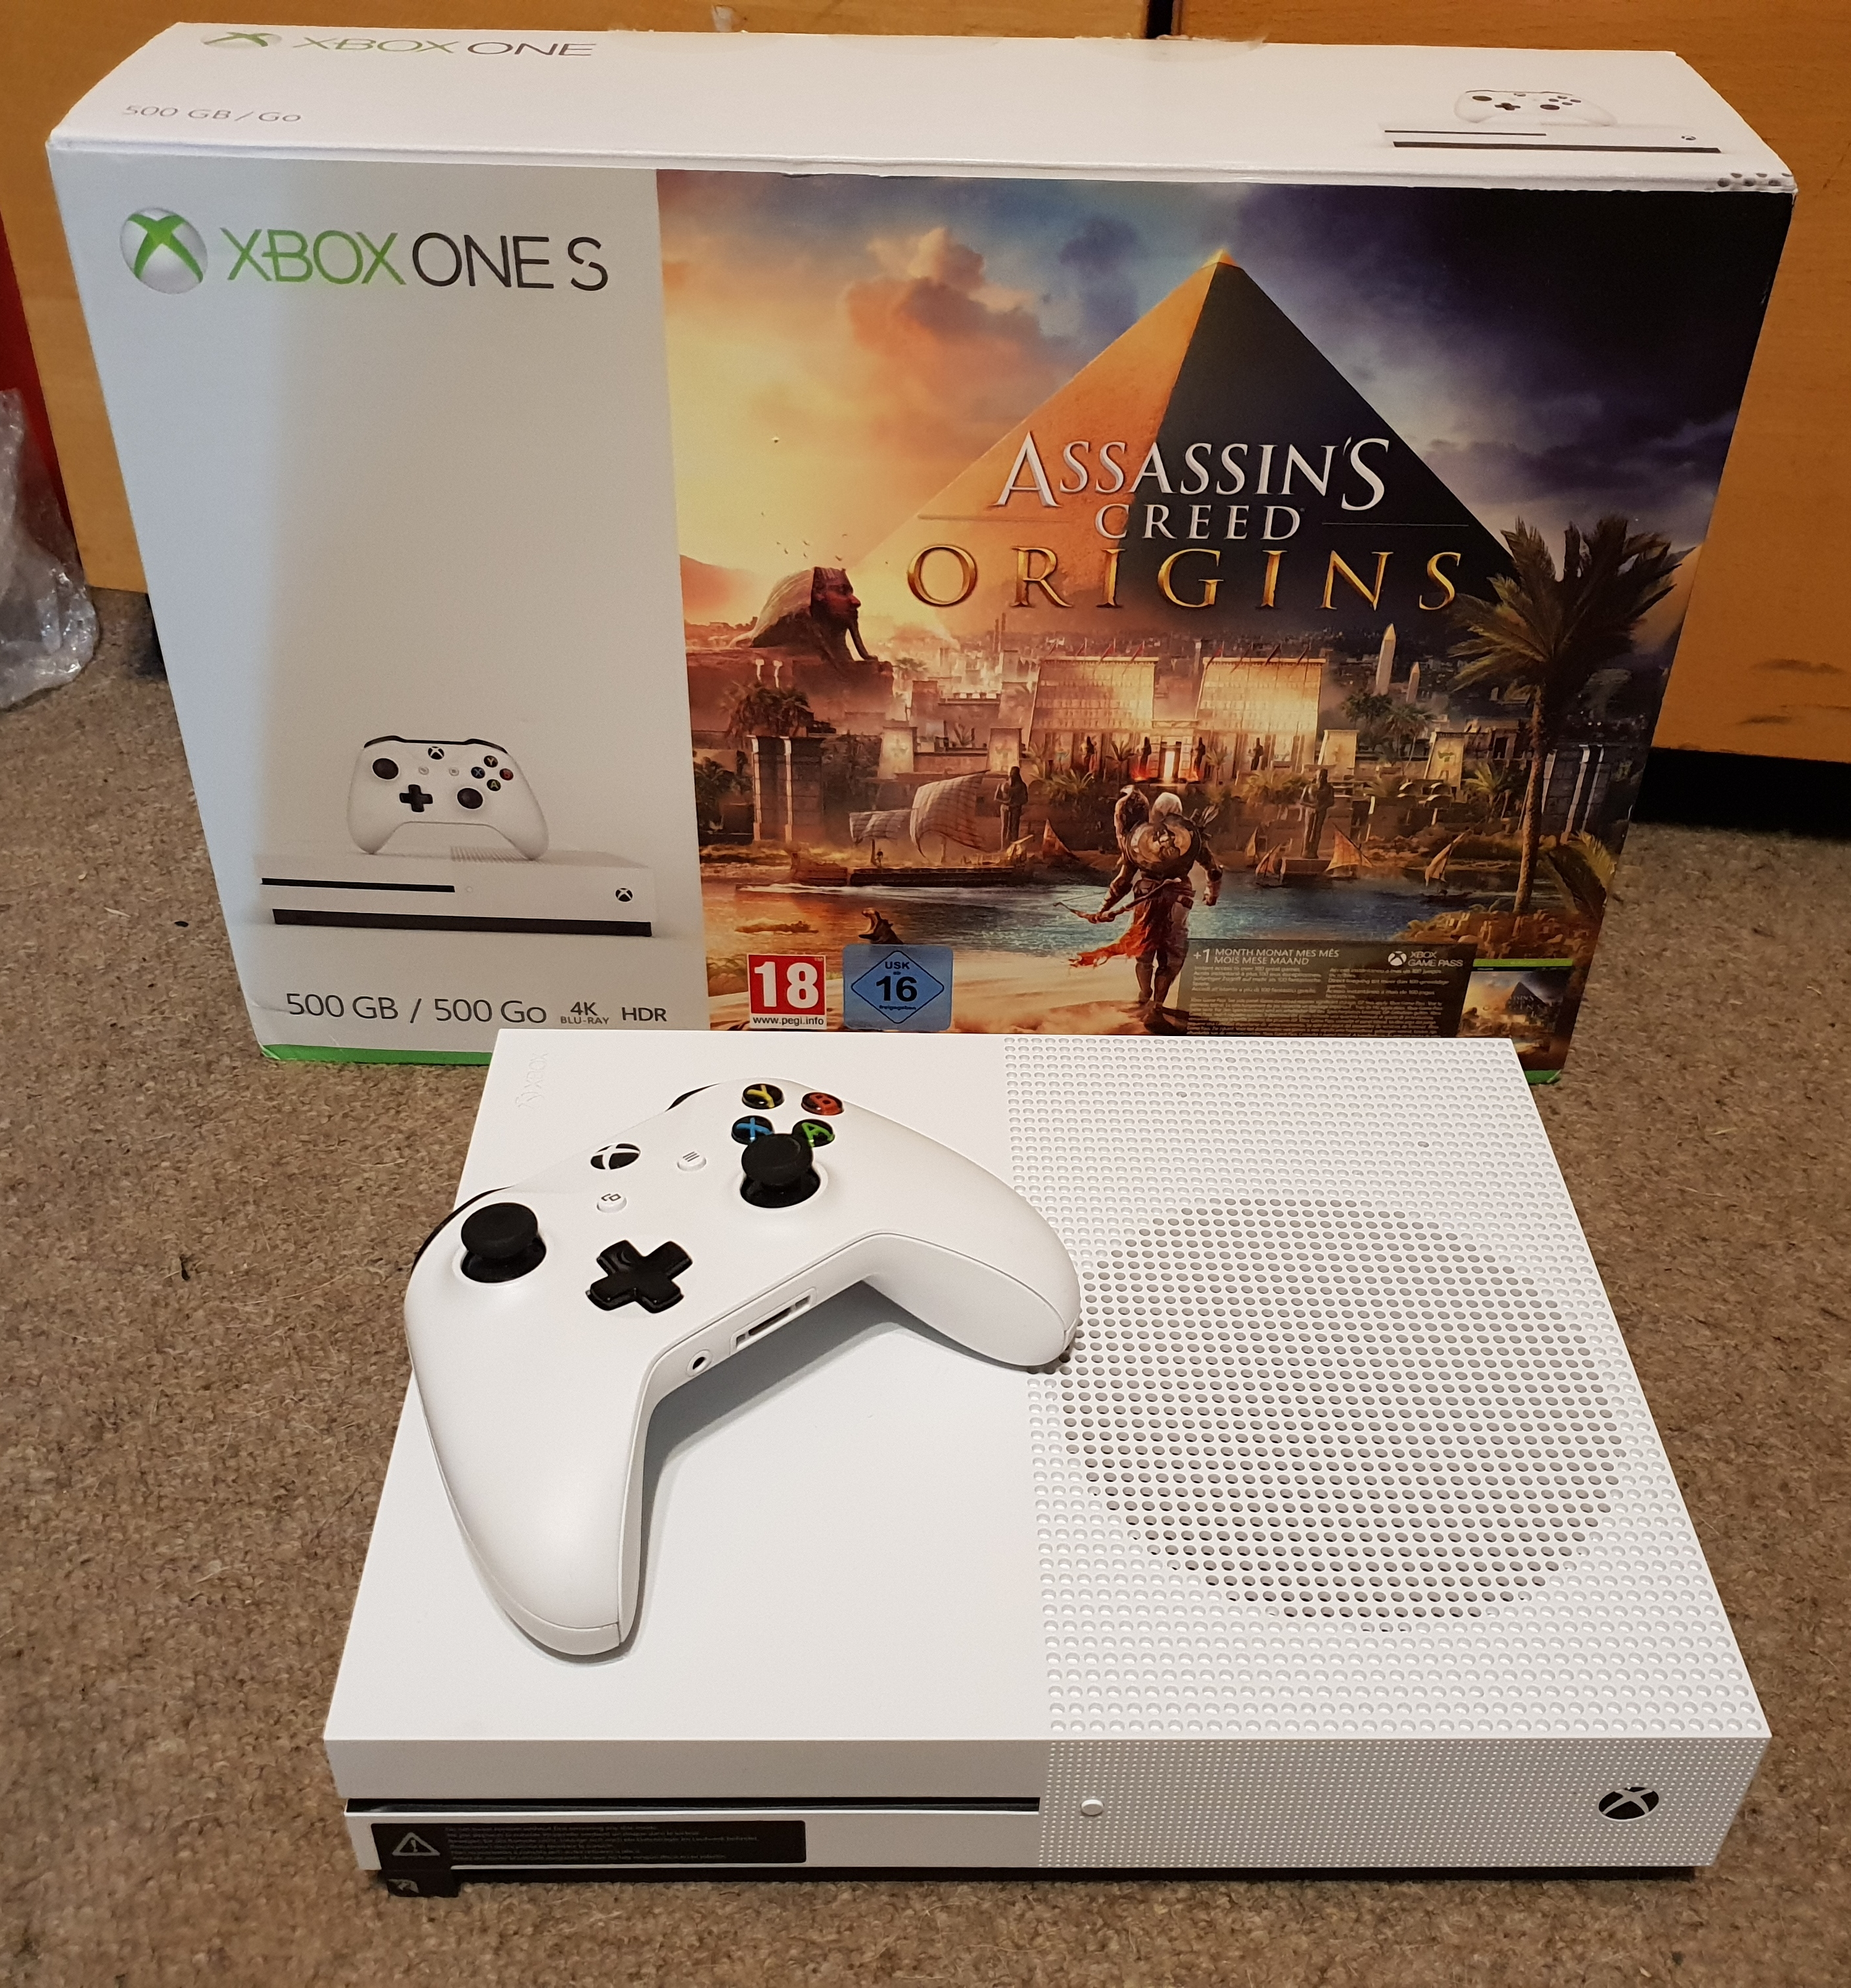 Products / Catalog / Xbox / Xbox One / Xbox One S Console White with Assassins Creed Origins 500GB